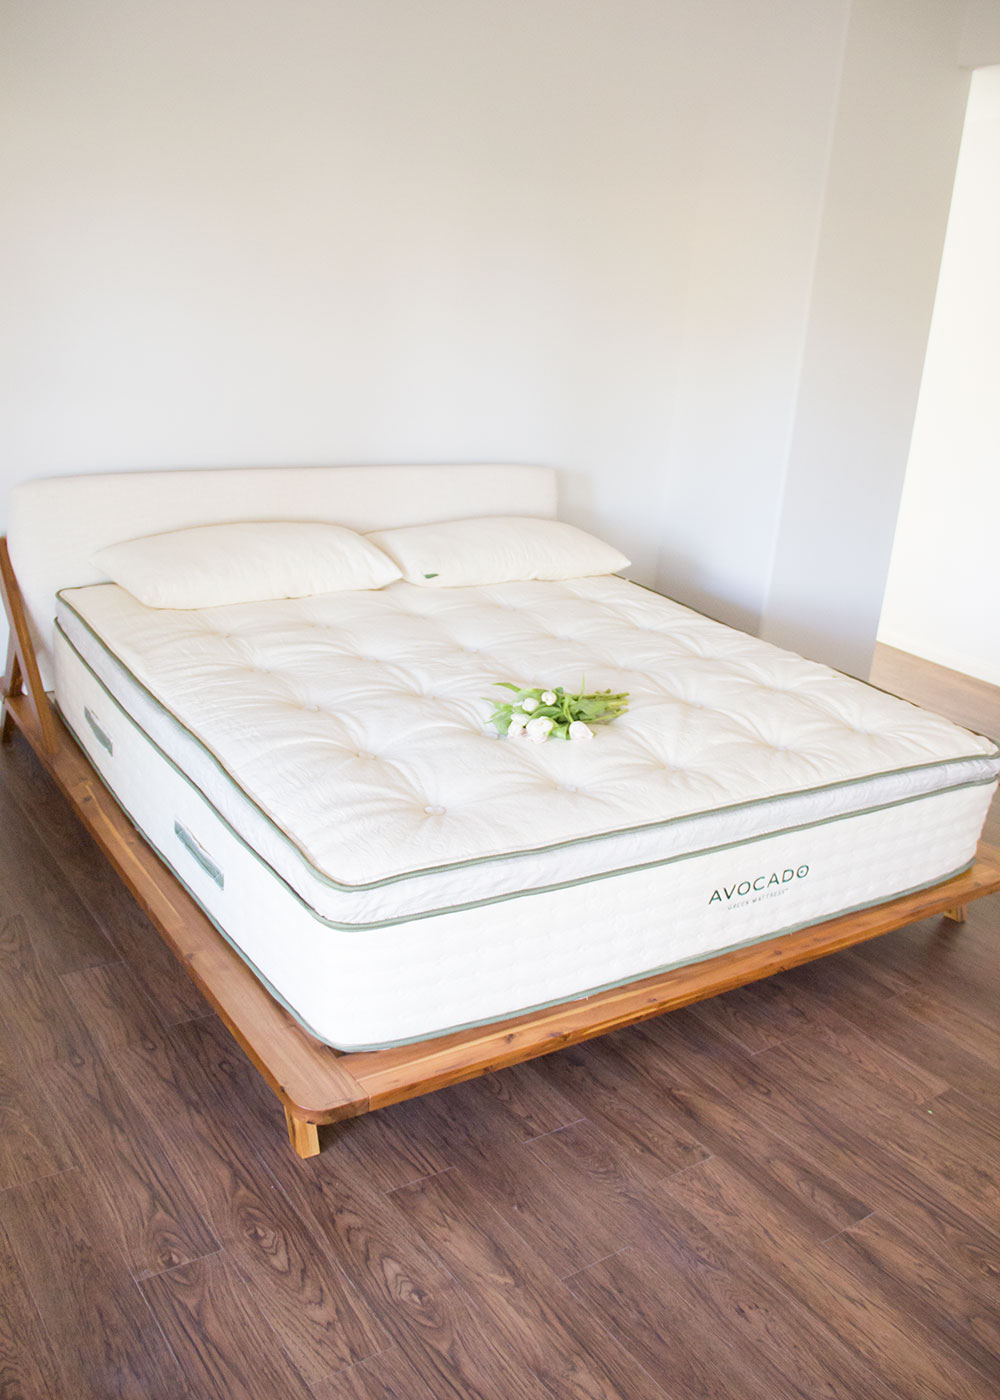 our new avocado green mattress. a full review! | thelovedesignedlife.com #naturalmattress #greenmattress #naturalliving